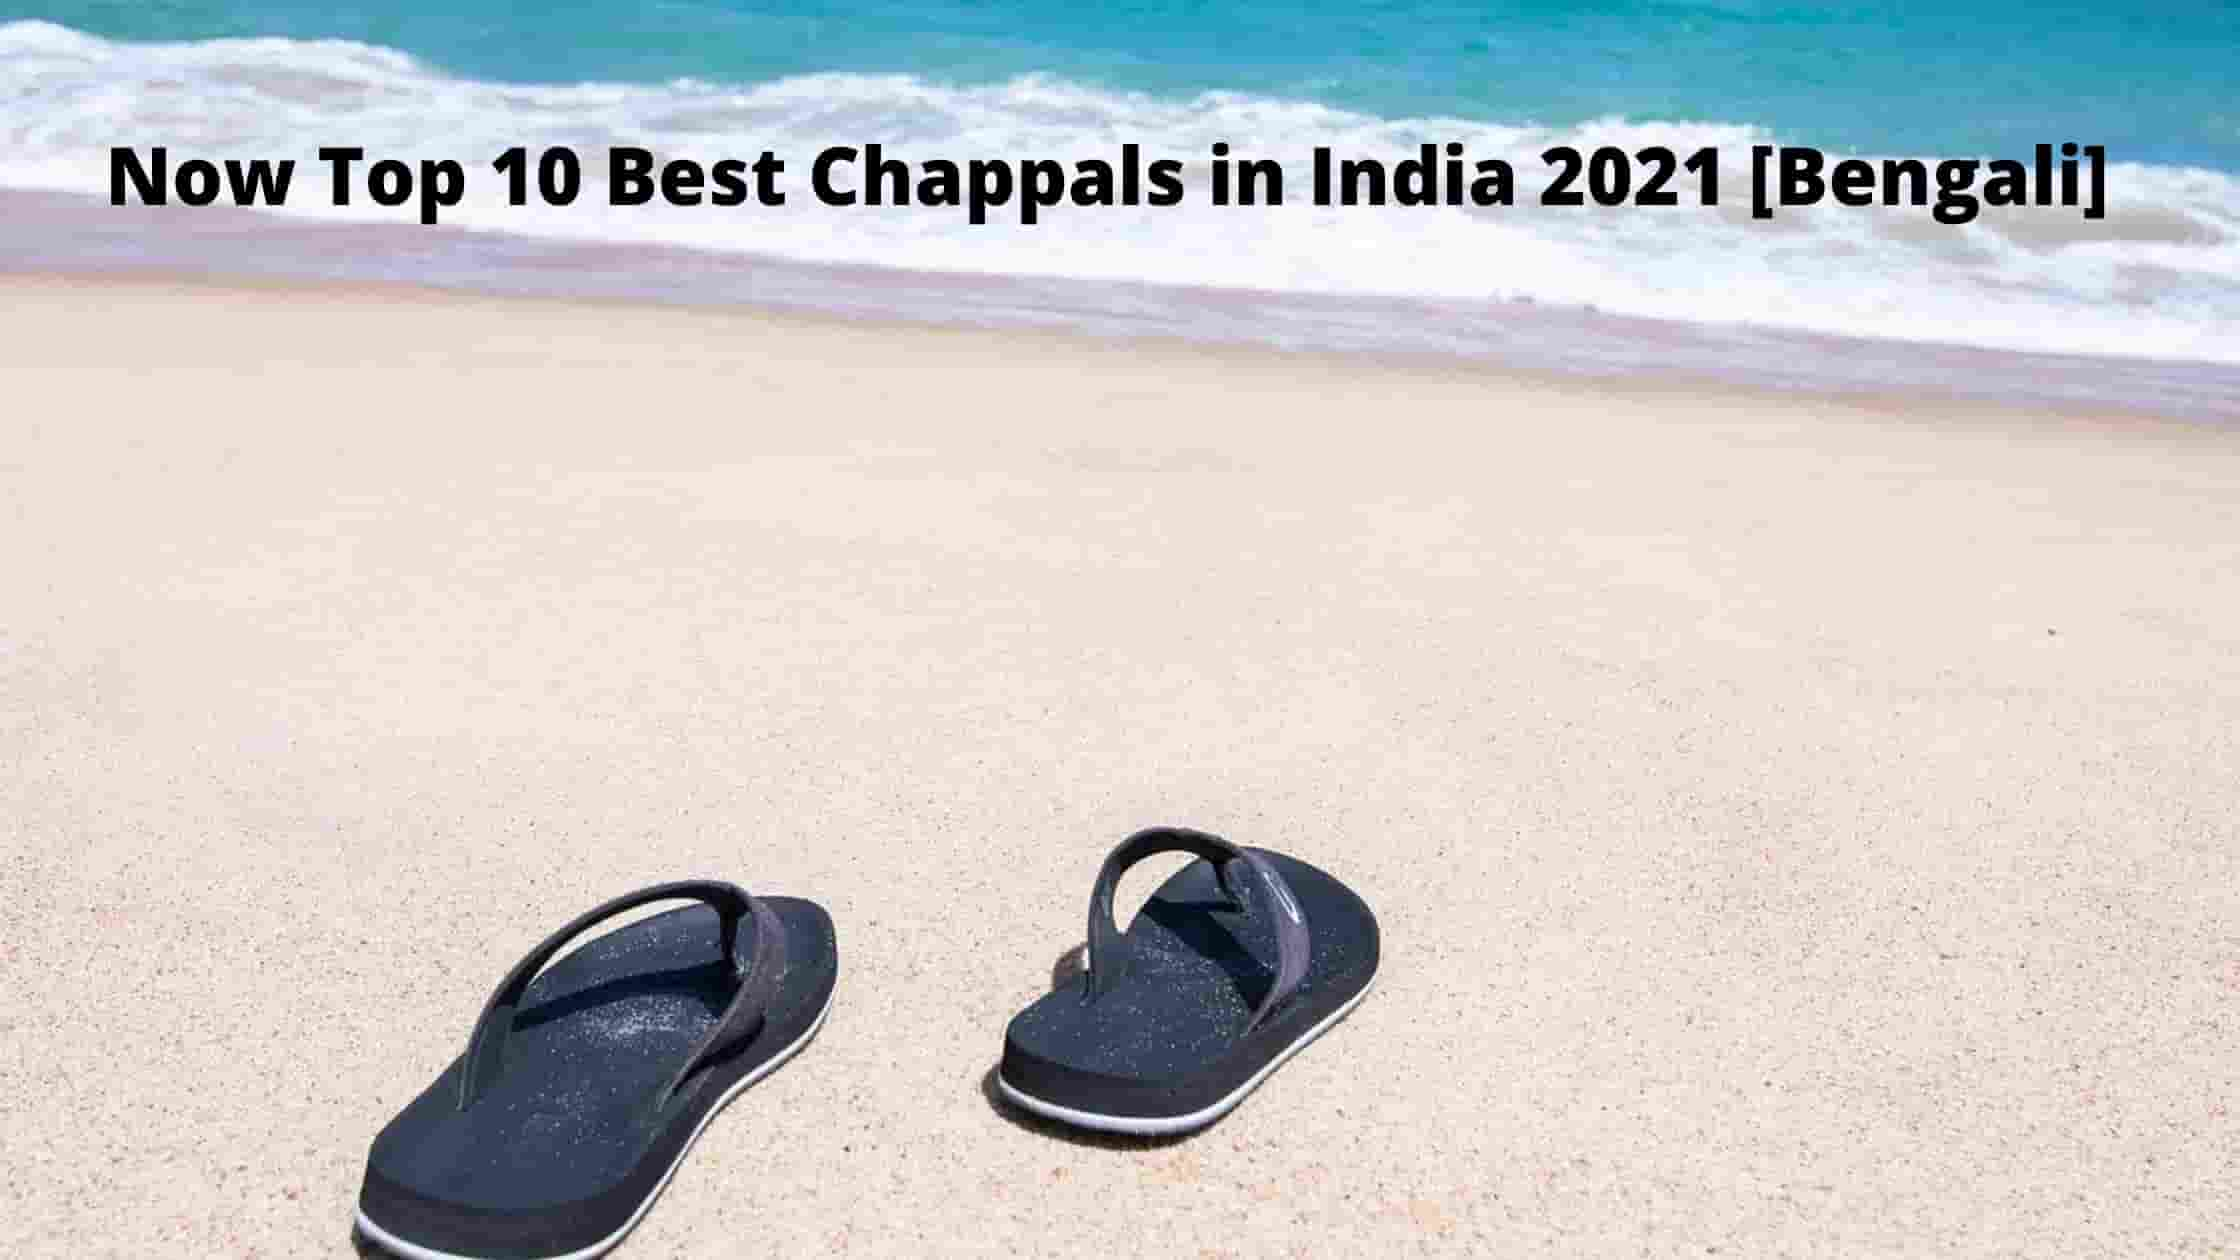 Now Top 10 Best Chappals in India 2021 [Bengali]